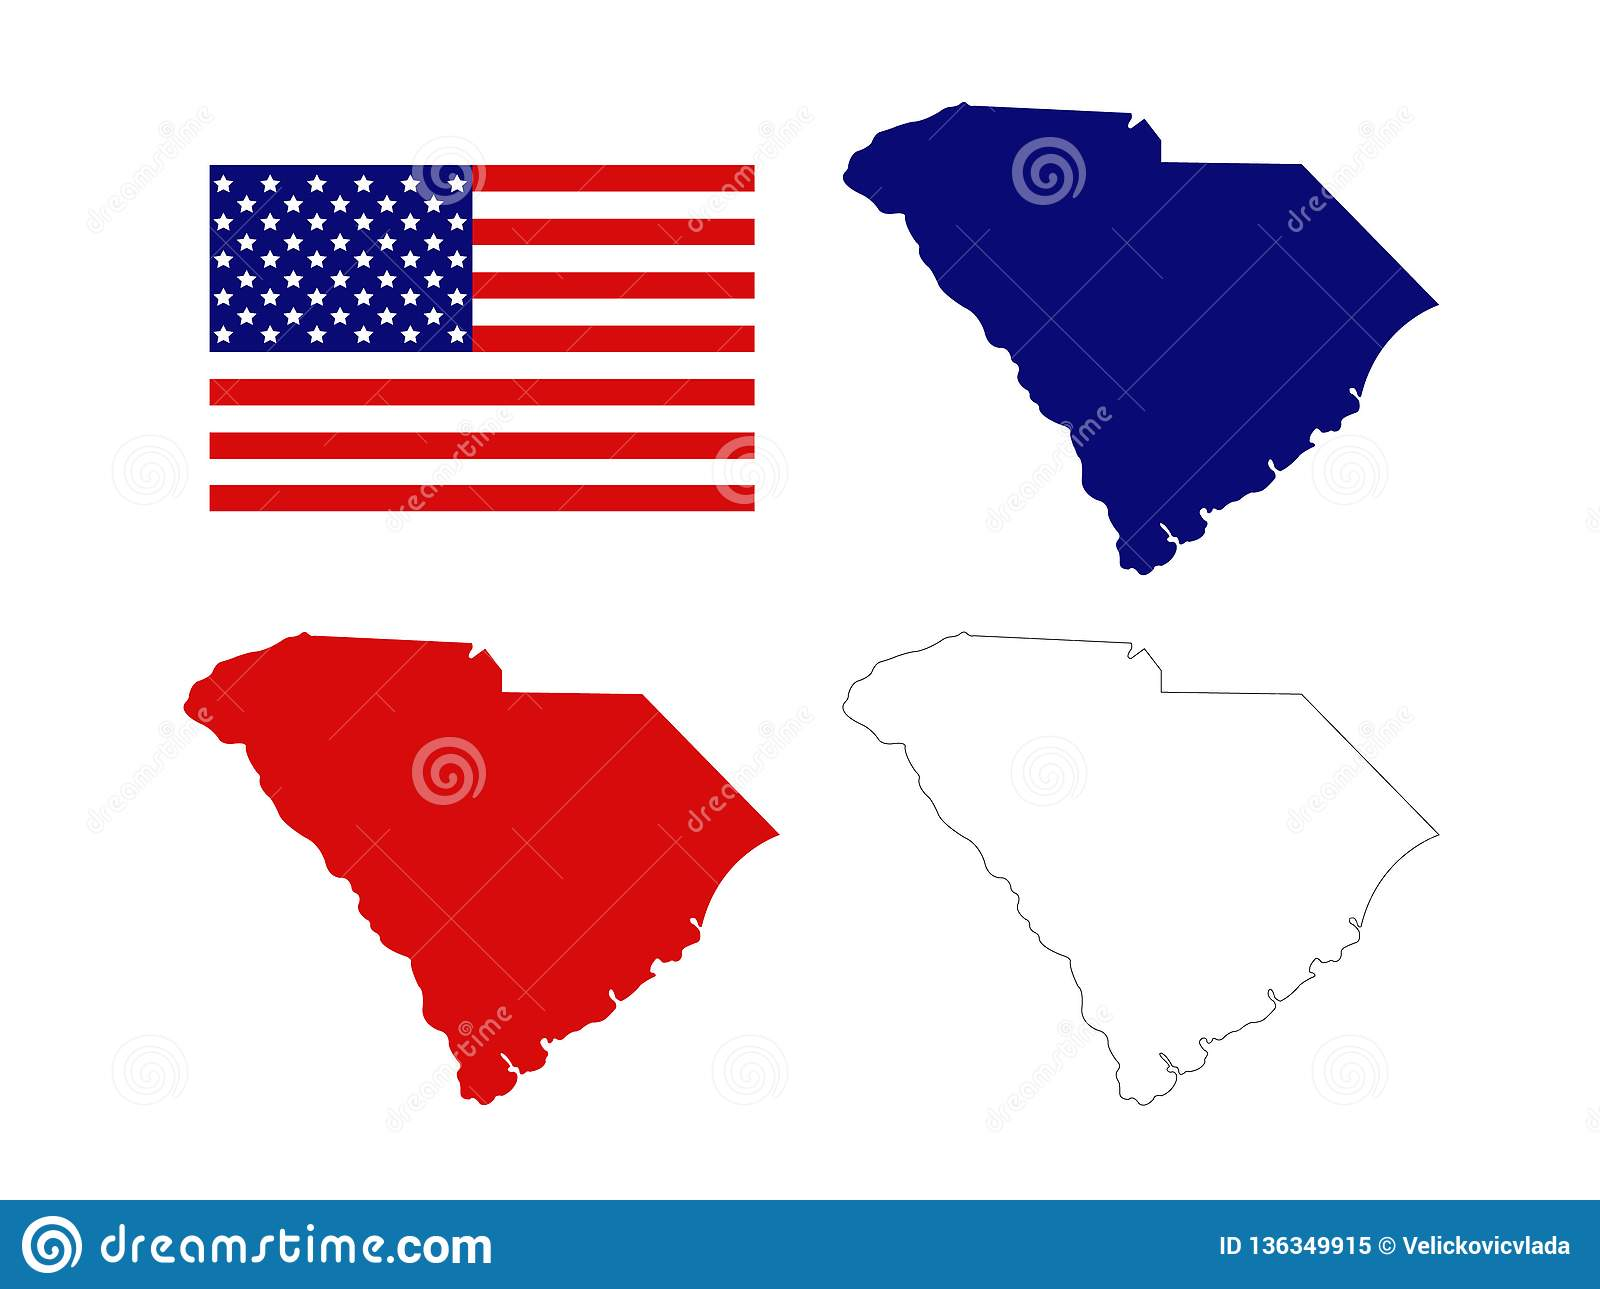 South Carolina Maps With USA Flag - State In The ... on map of england and united states, mid south united states, map of union confederate border states, map of west of united states, view map of united states, map of east coast united states, map of alabama, map of new york united states, map of airports in united states, interstate map of united states, south central united states, map of united states to australia, outline map of united states, bing maps of the united states, map of united states of america, map of mid united states, map of eastern states of united states, map of midsouth united states, north east south west united states, map of western united states,